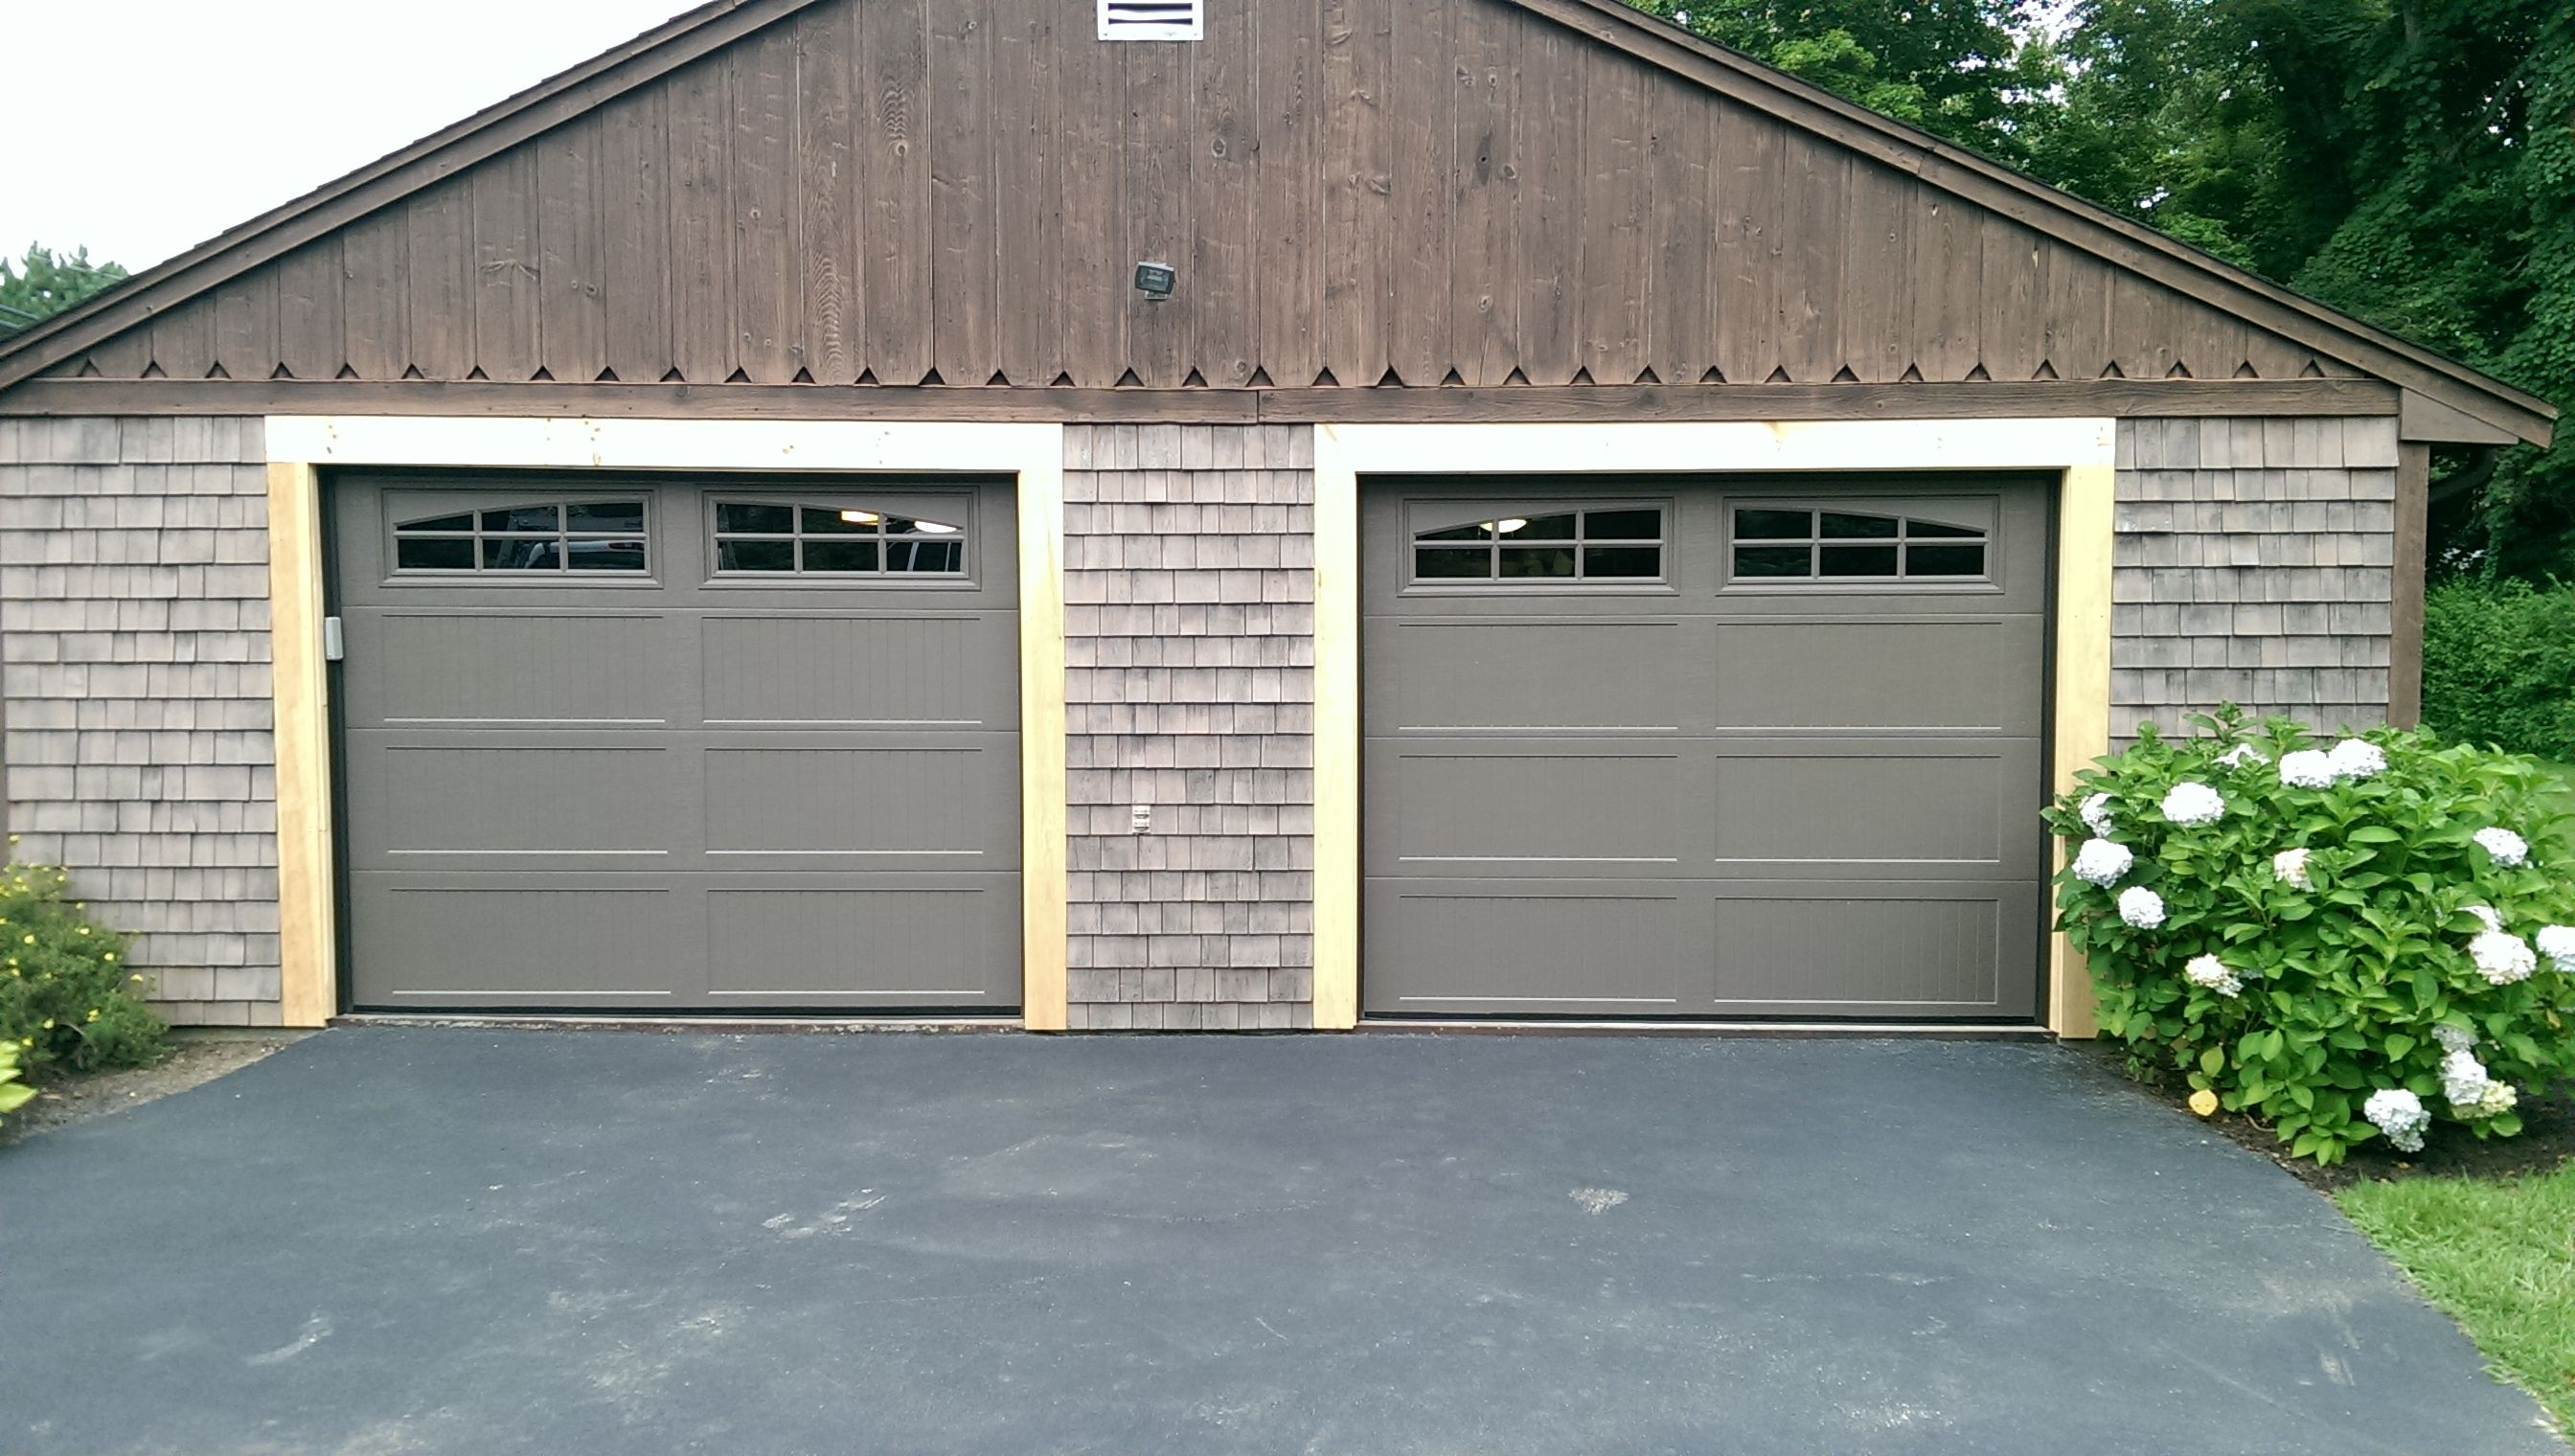 Haas Model 664 Long Panel Steel Insulated Carriage House Garage